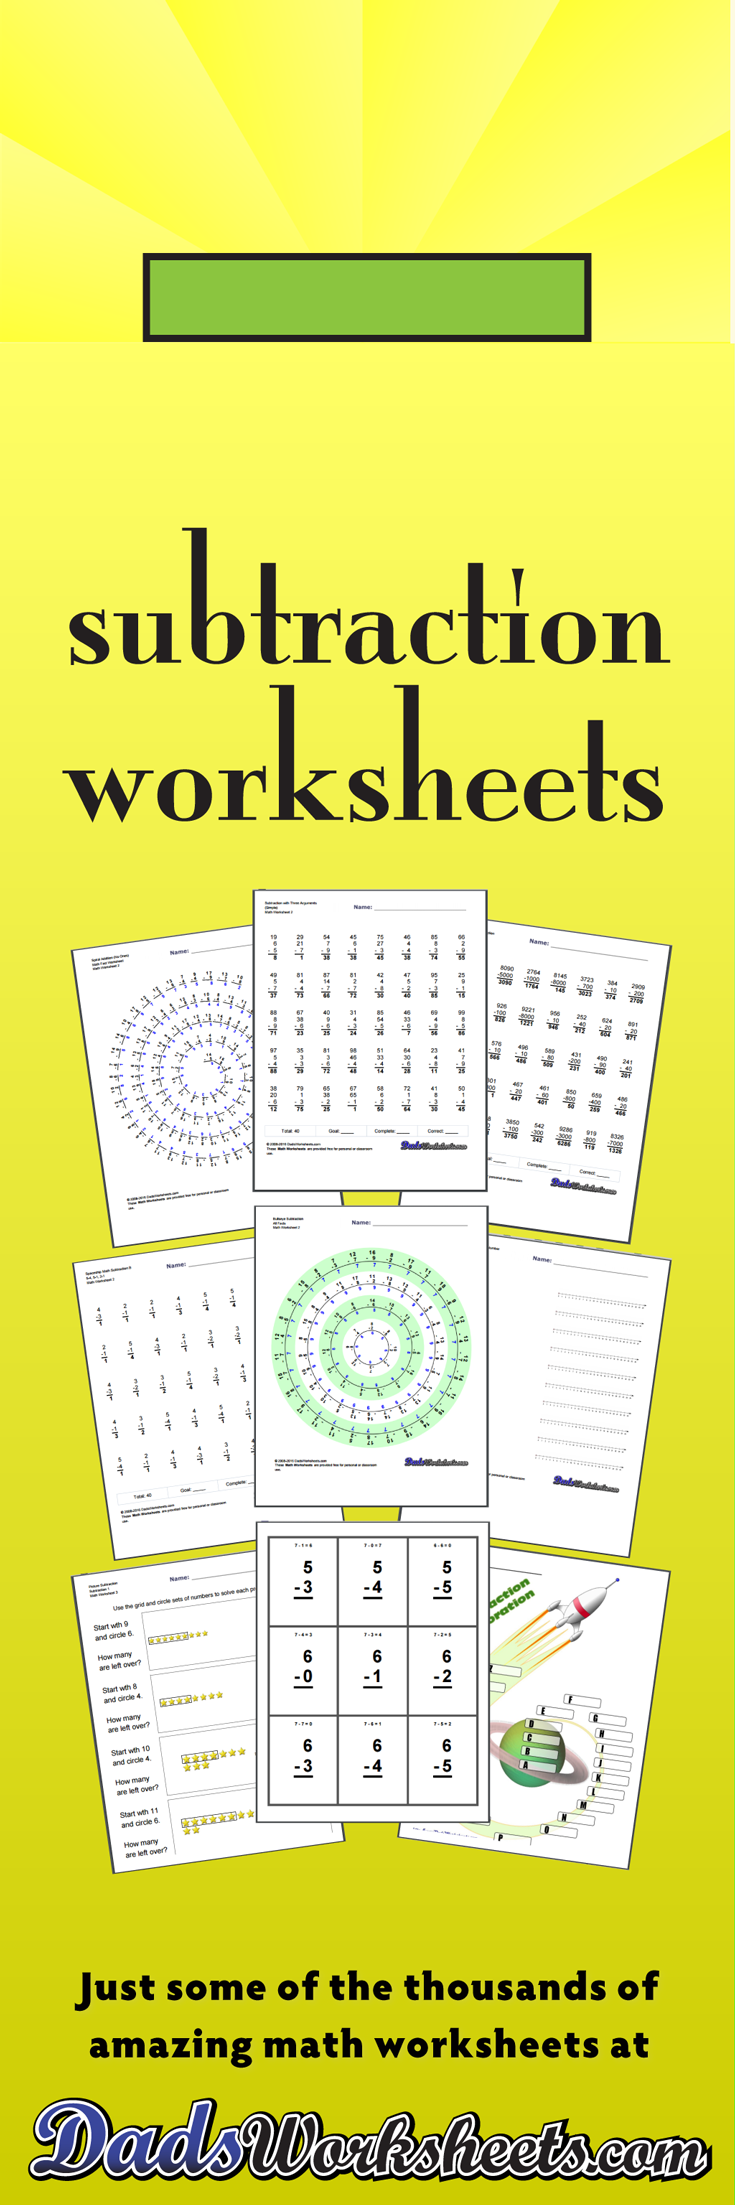 464 Subtraction Worksheets for You to Print Right Now